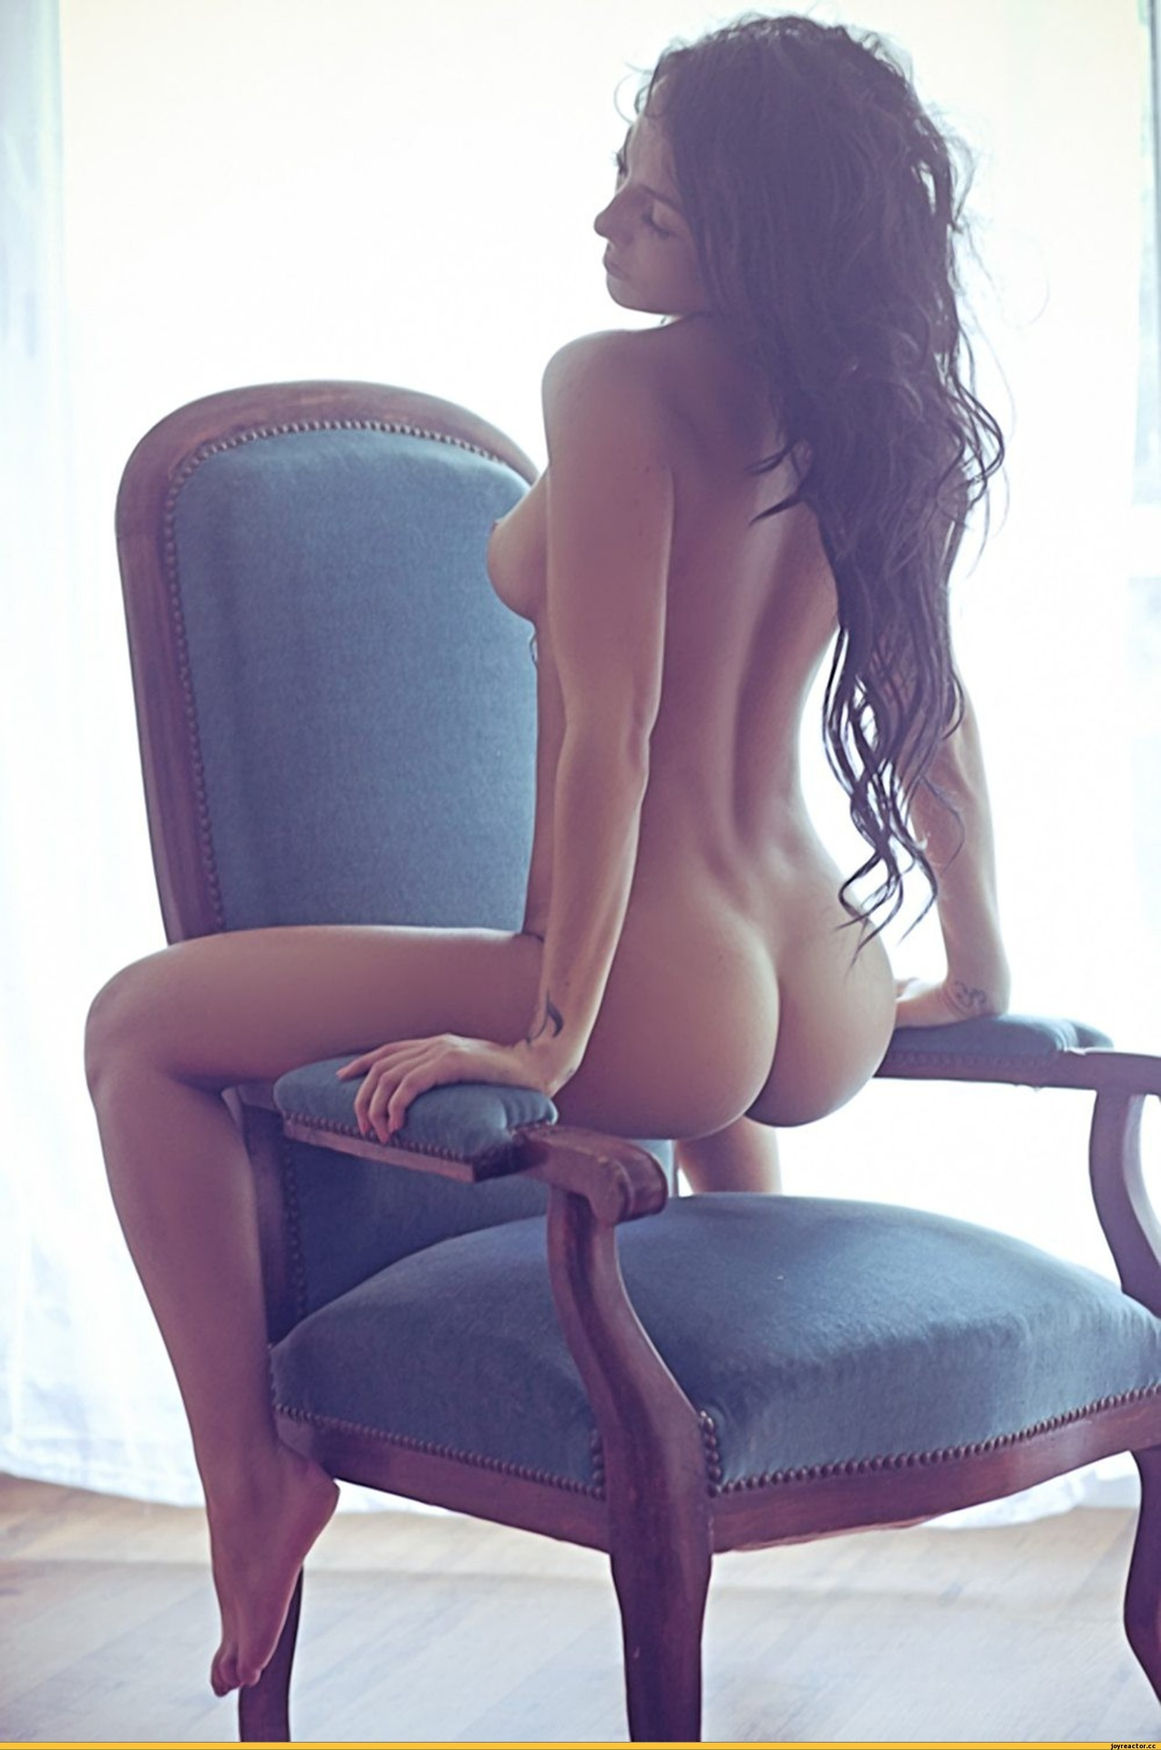 Whats missing?…me sitting on the chair..😉😆